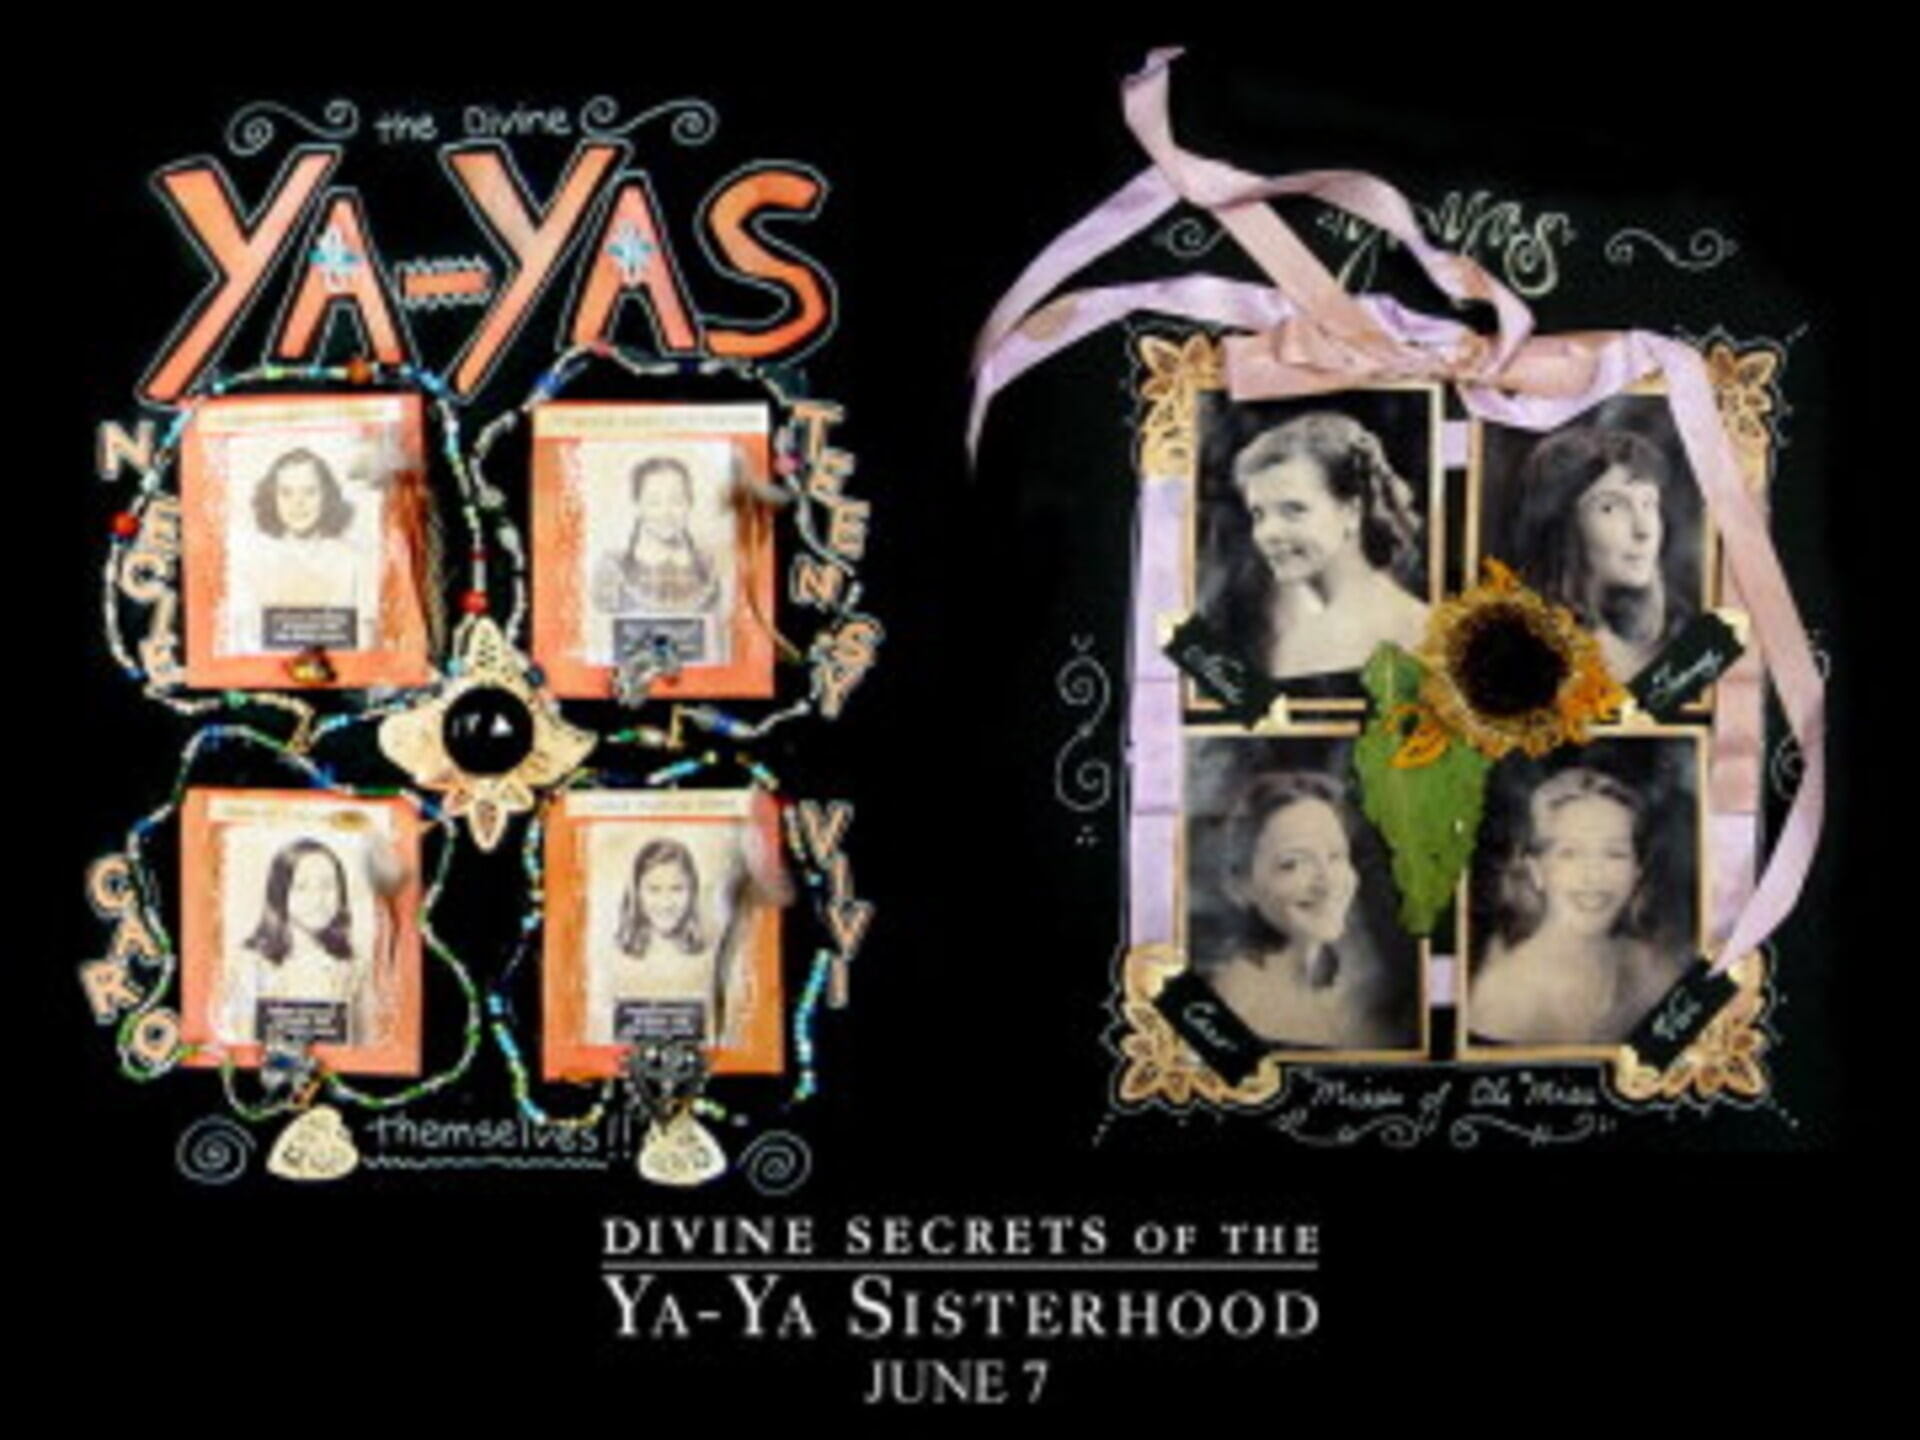 Divine Secrets of the Ya-Ya Sisterhood - Image 16